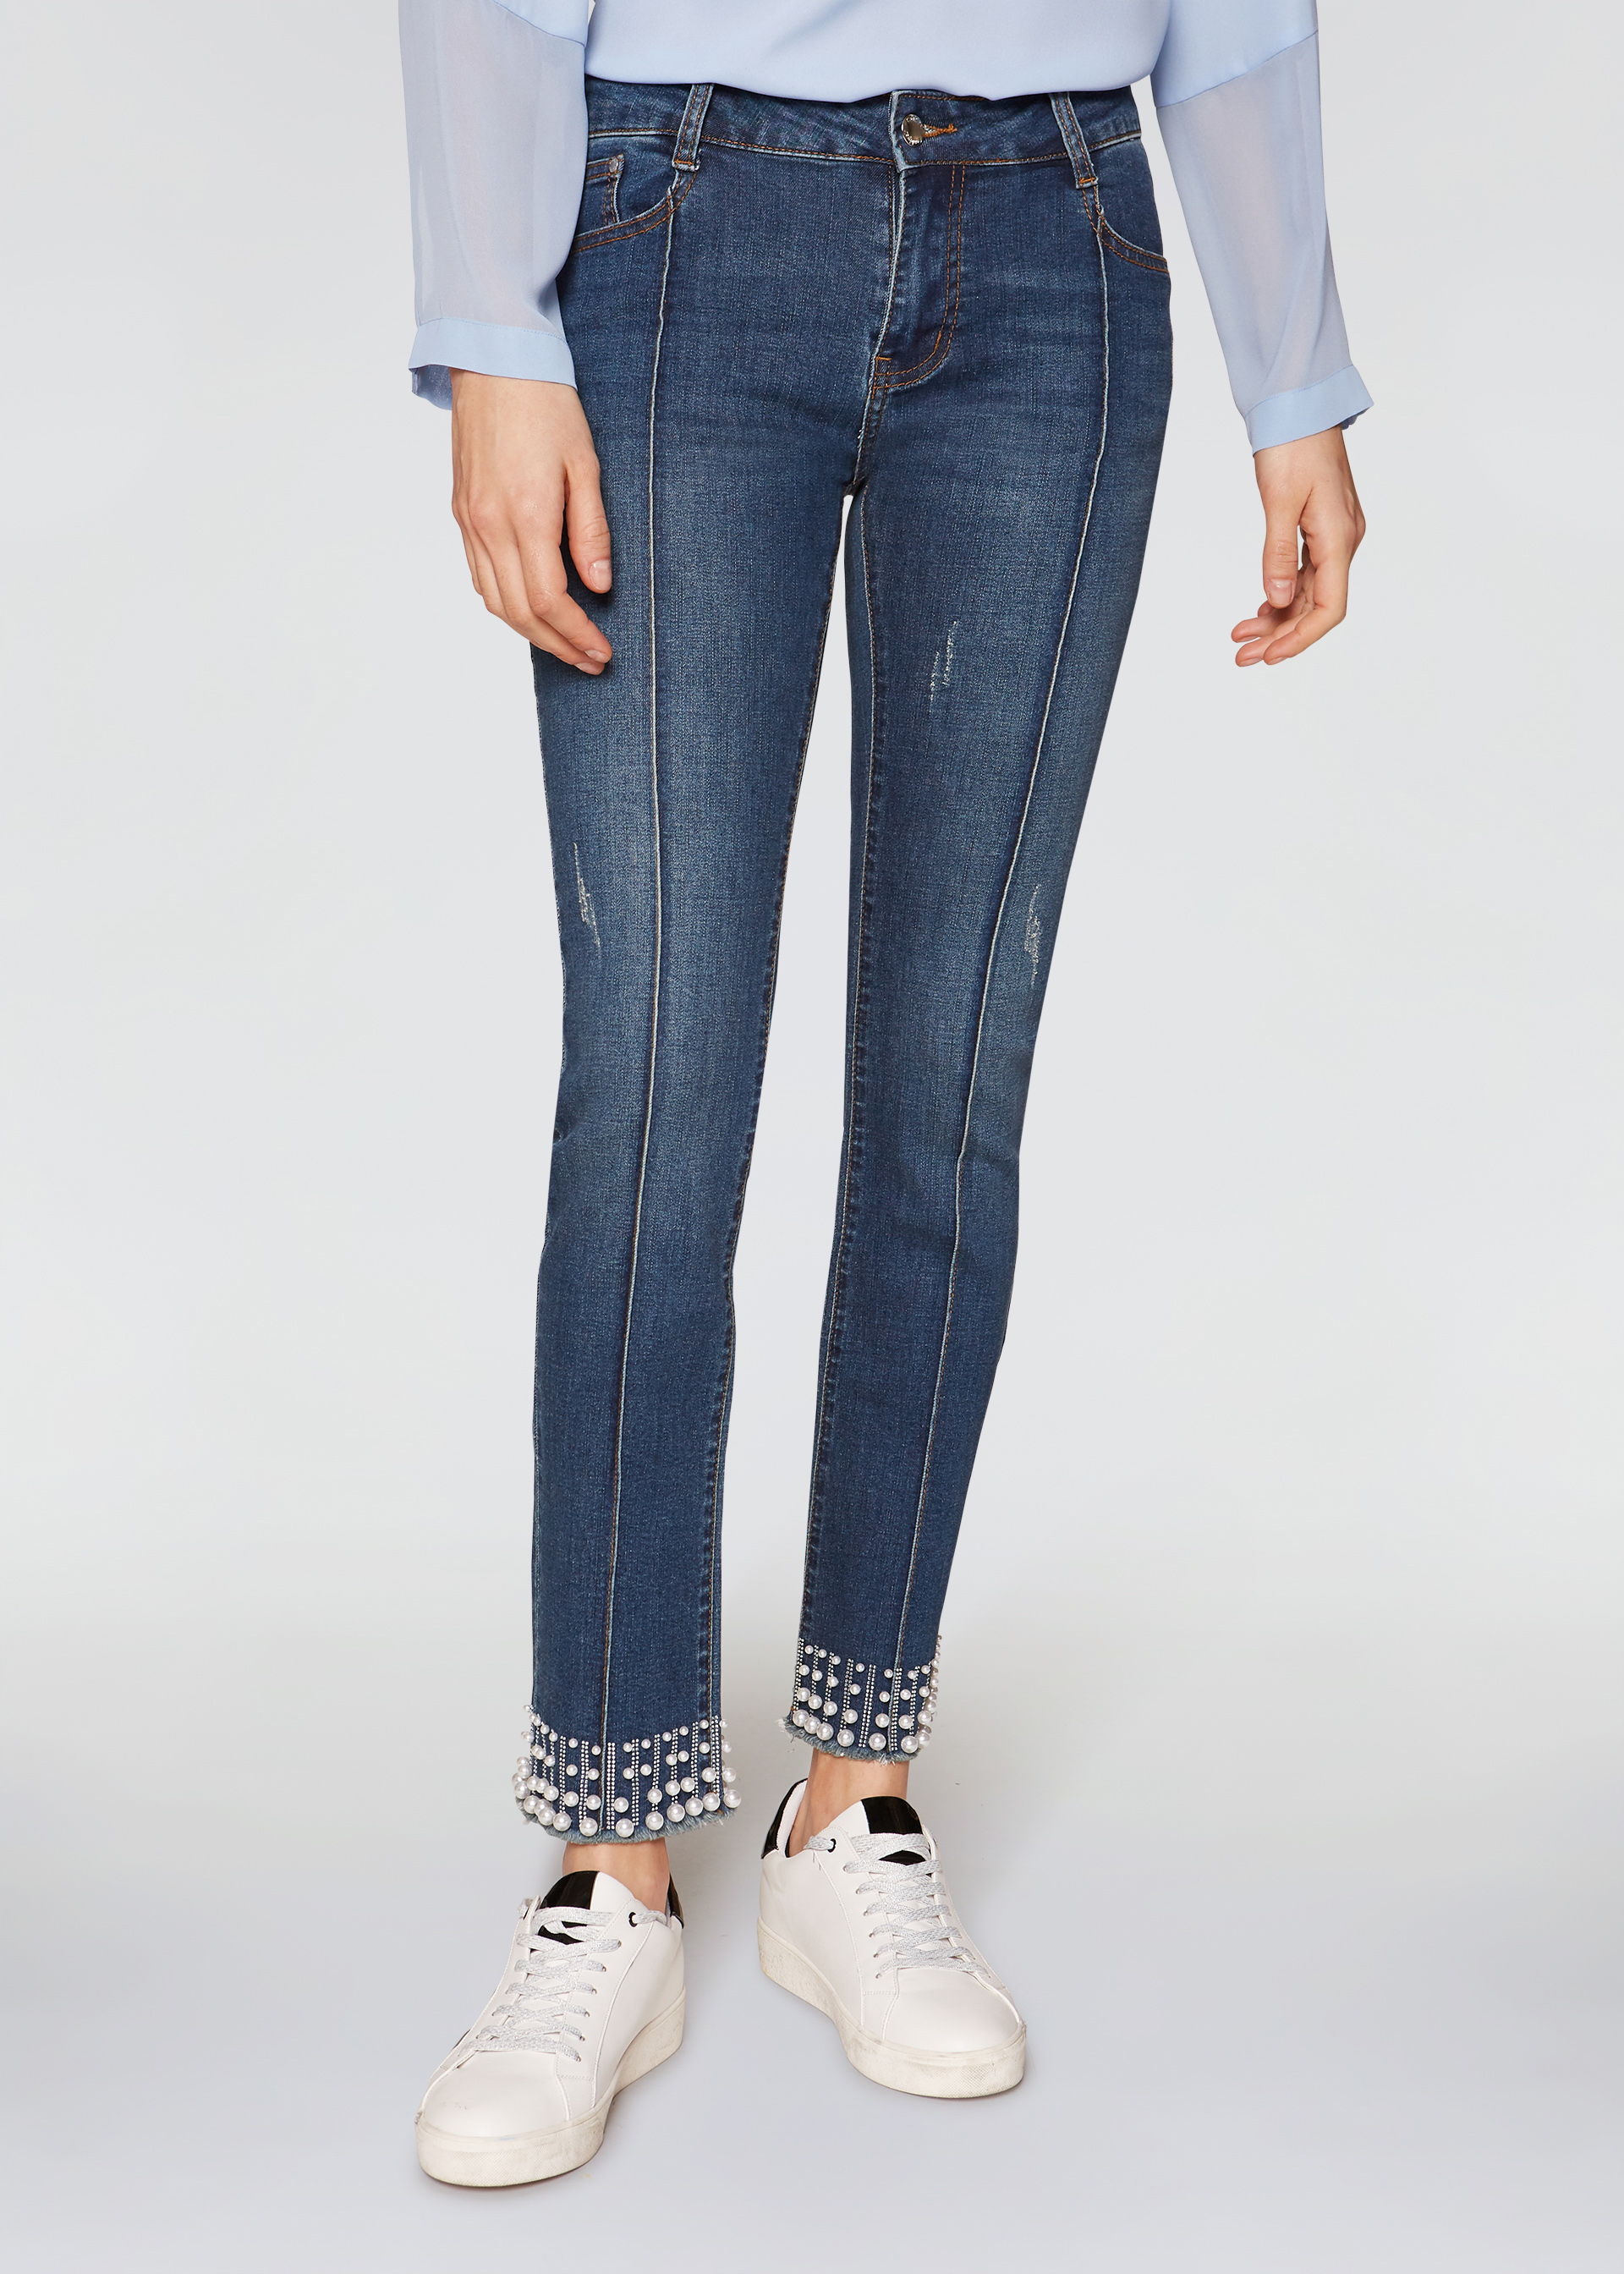 Jeans con perle skinny